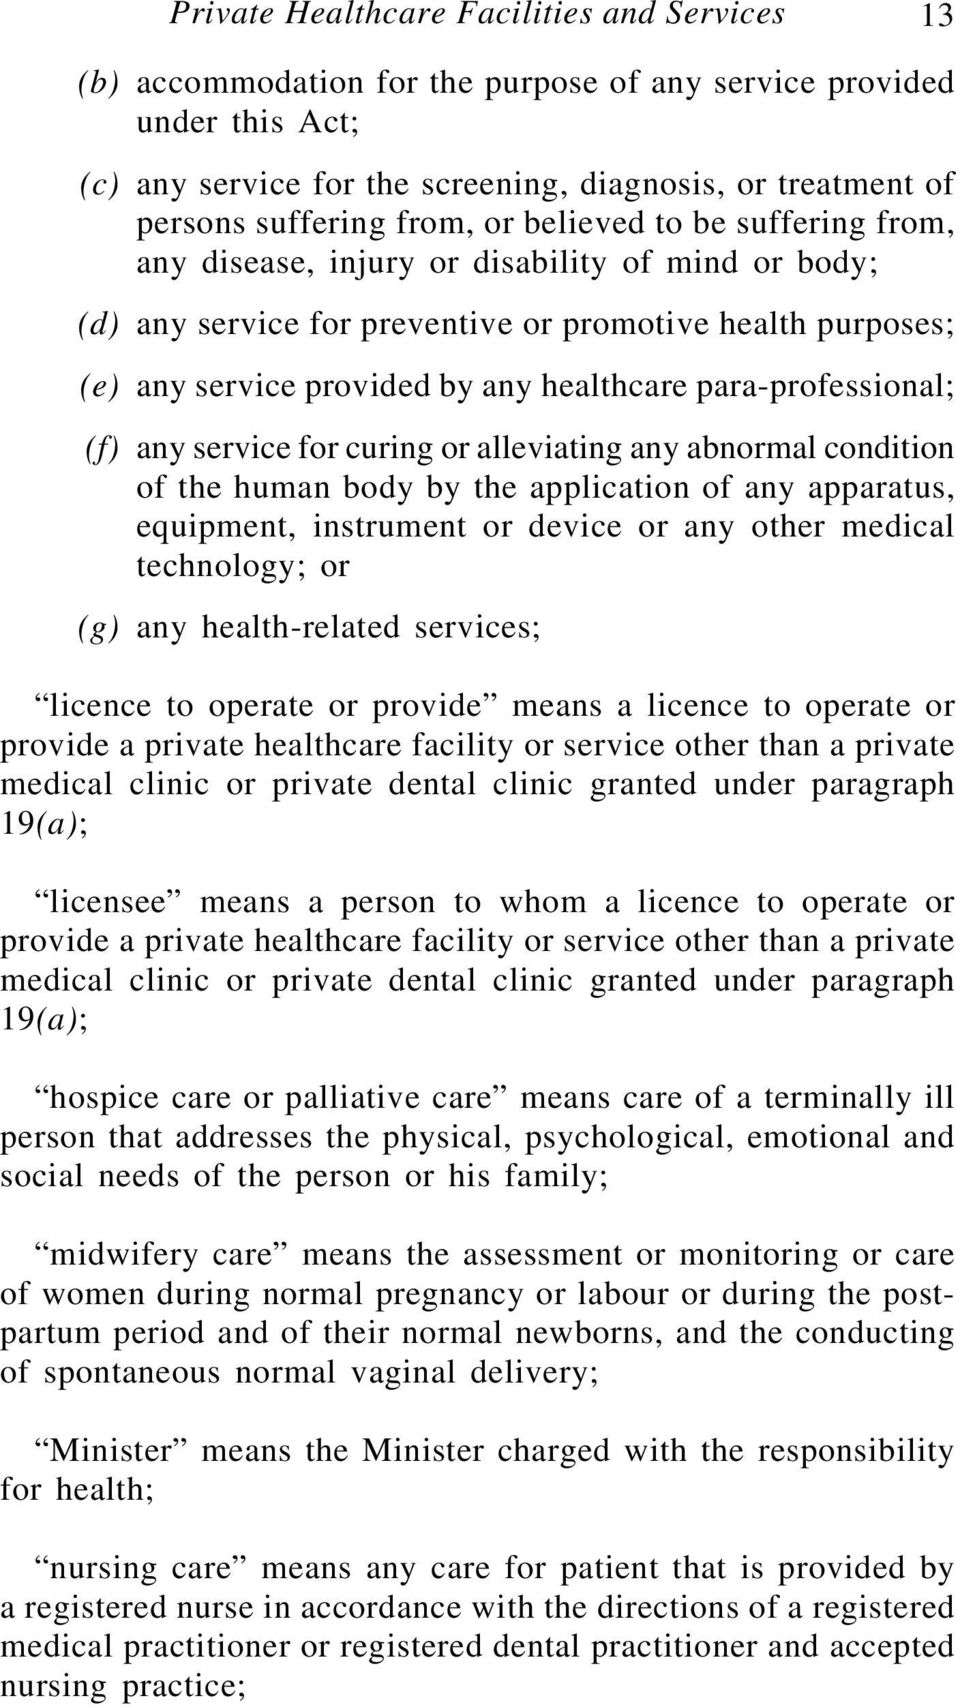 para-professional; (f) any service for curing or alleviating any abnormal condition of the human body by the application of any apparatus, equipment, instrument or device or any other medical